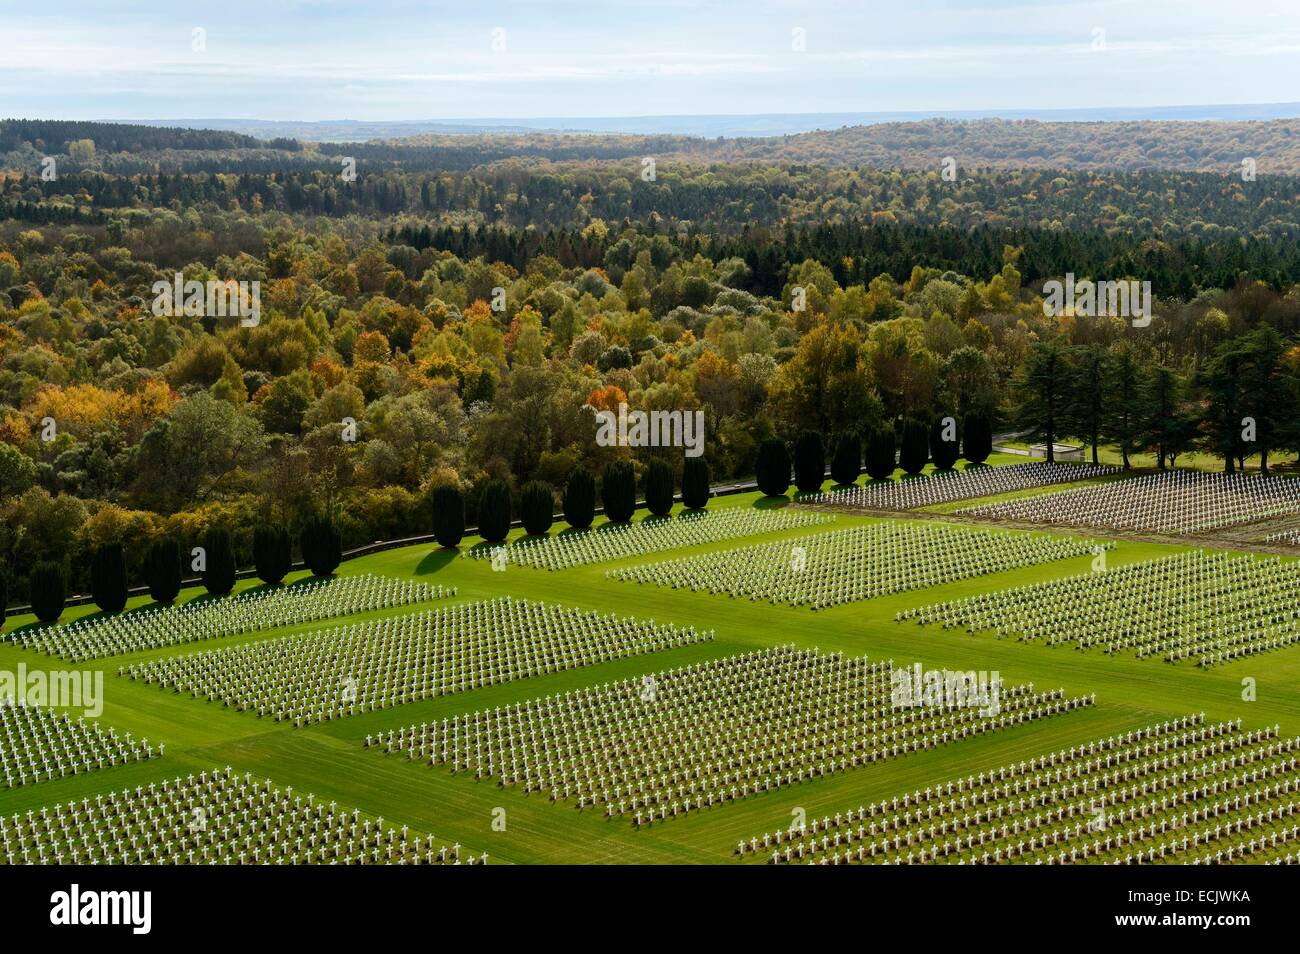 France, Meuse, Douaumont, battle of Verdun, ossuary of Douaumont, national necropolis, graves of soldiers alignment - Stock Image